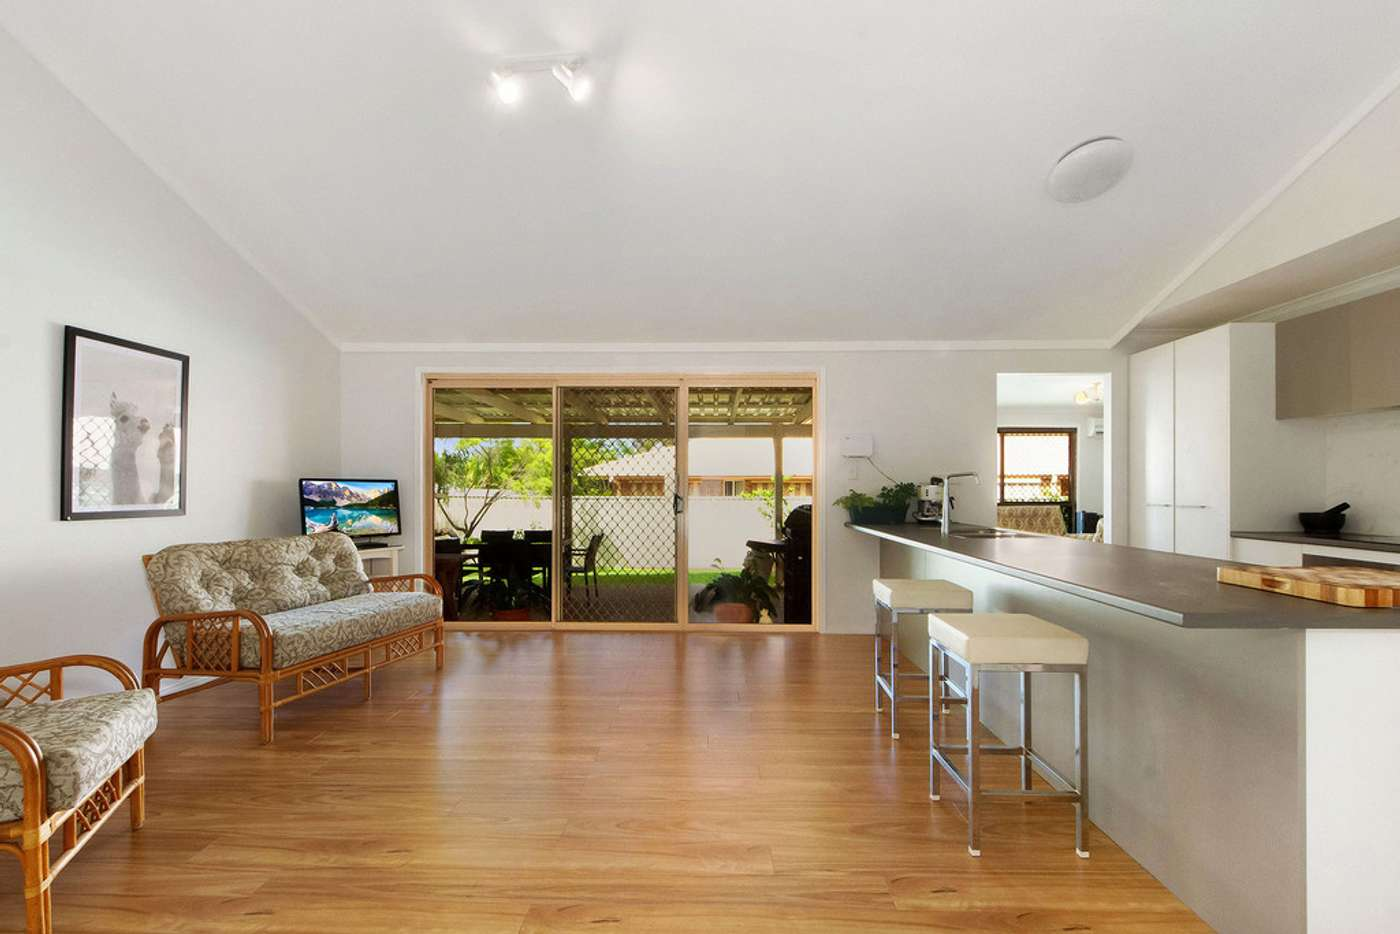 Main view of Homely house listing, 7 Lorne Court, Merrimac QLD 4226